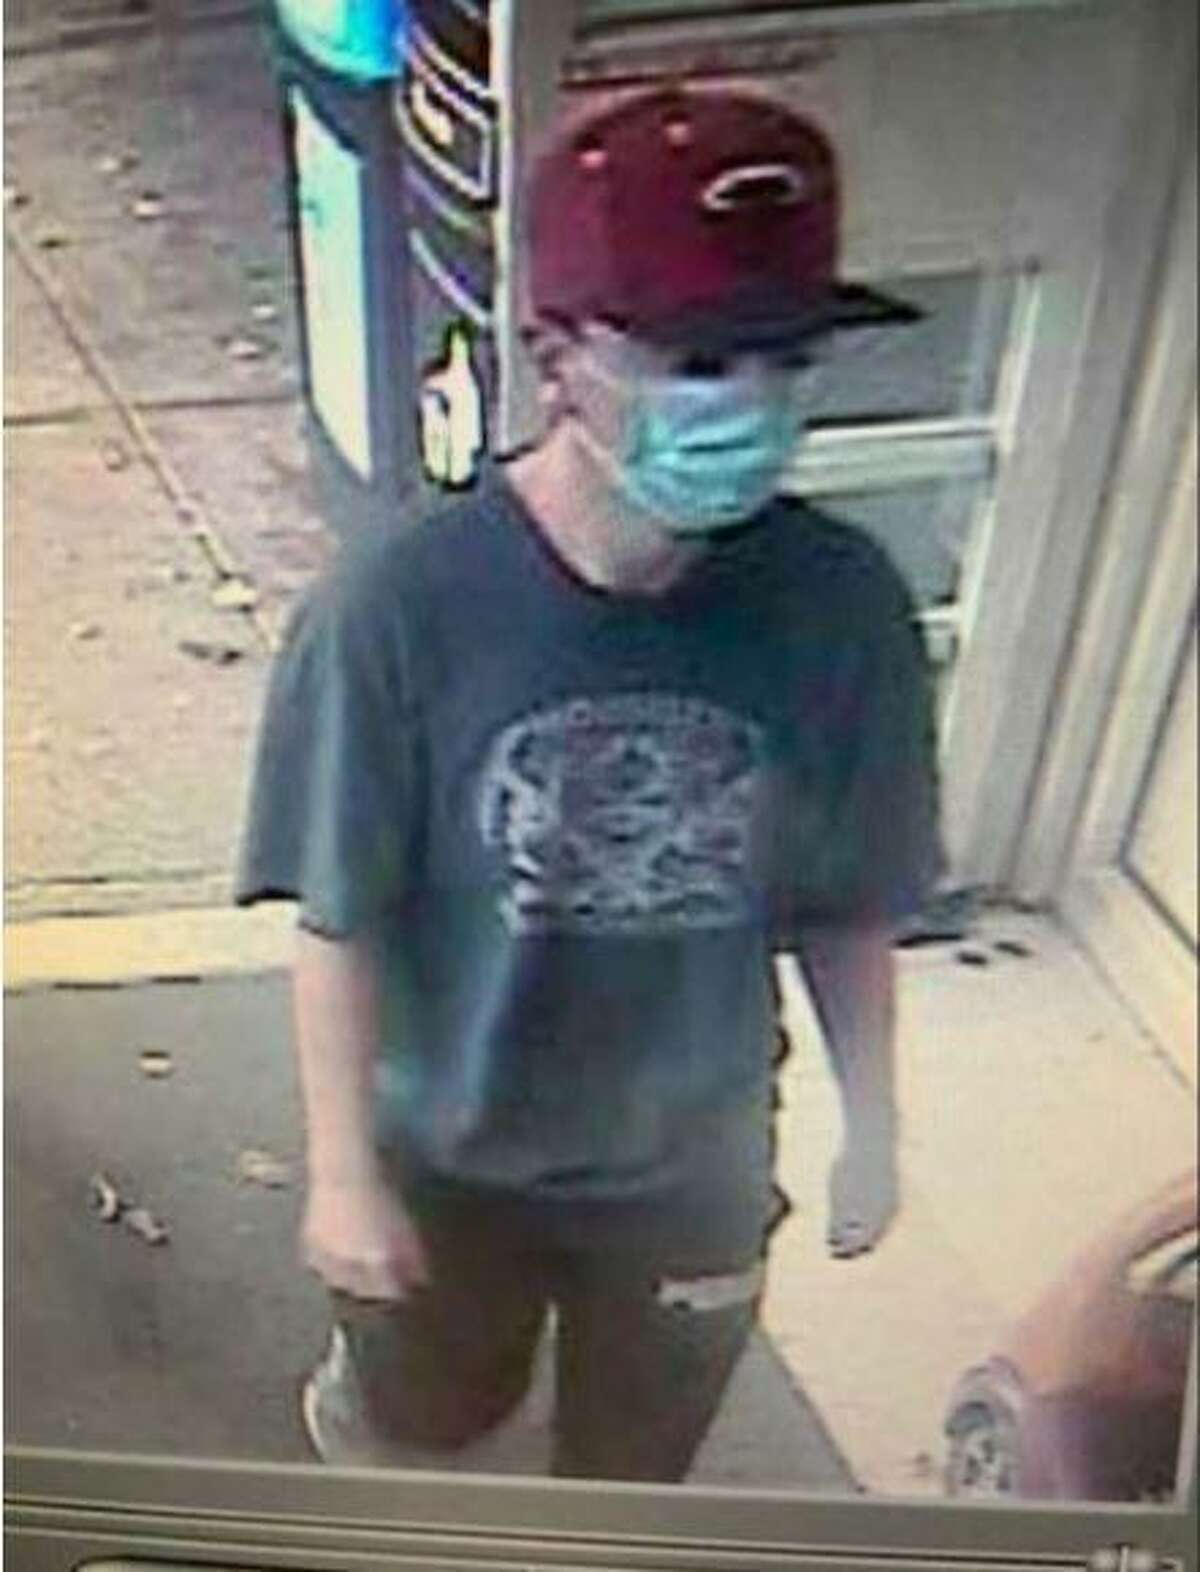 Police are investigating after a man robbed the People's United Bank in the Kings Highway Cutoff Stop & Shop.